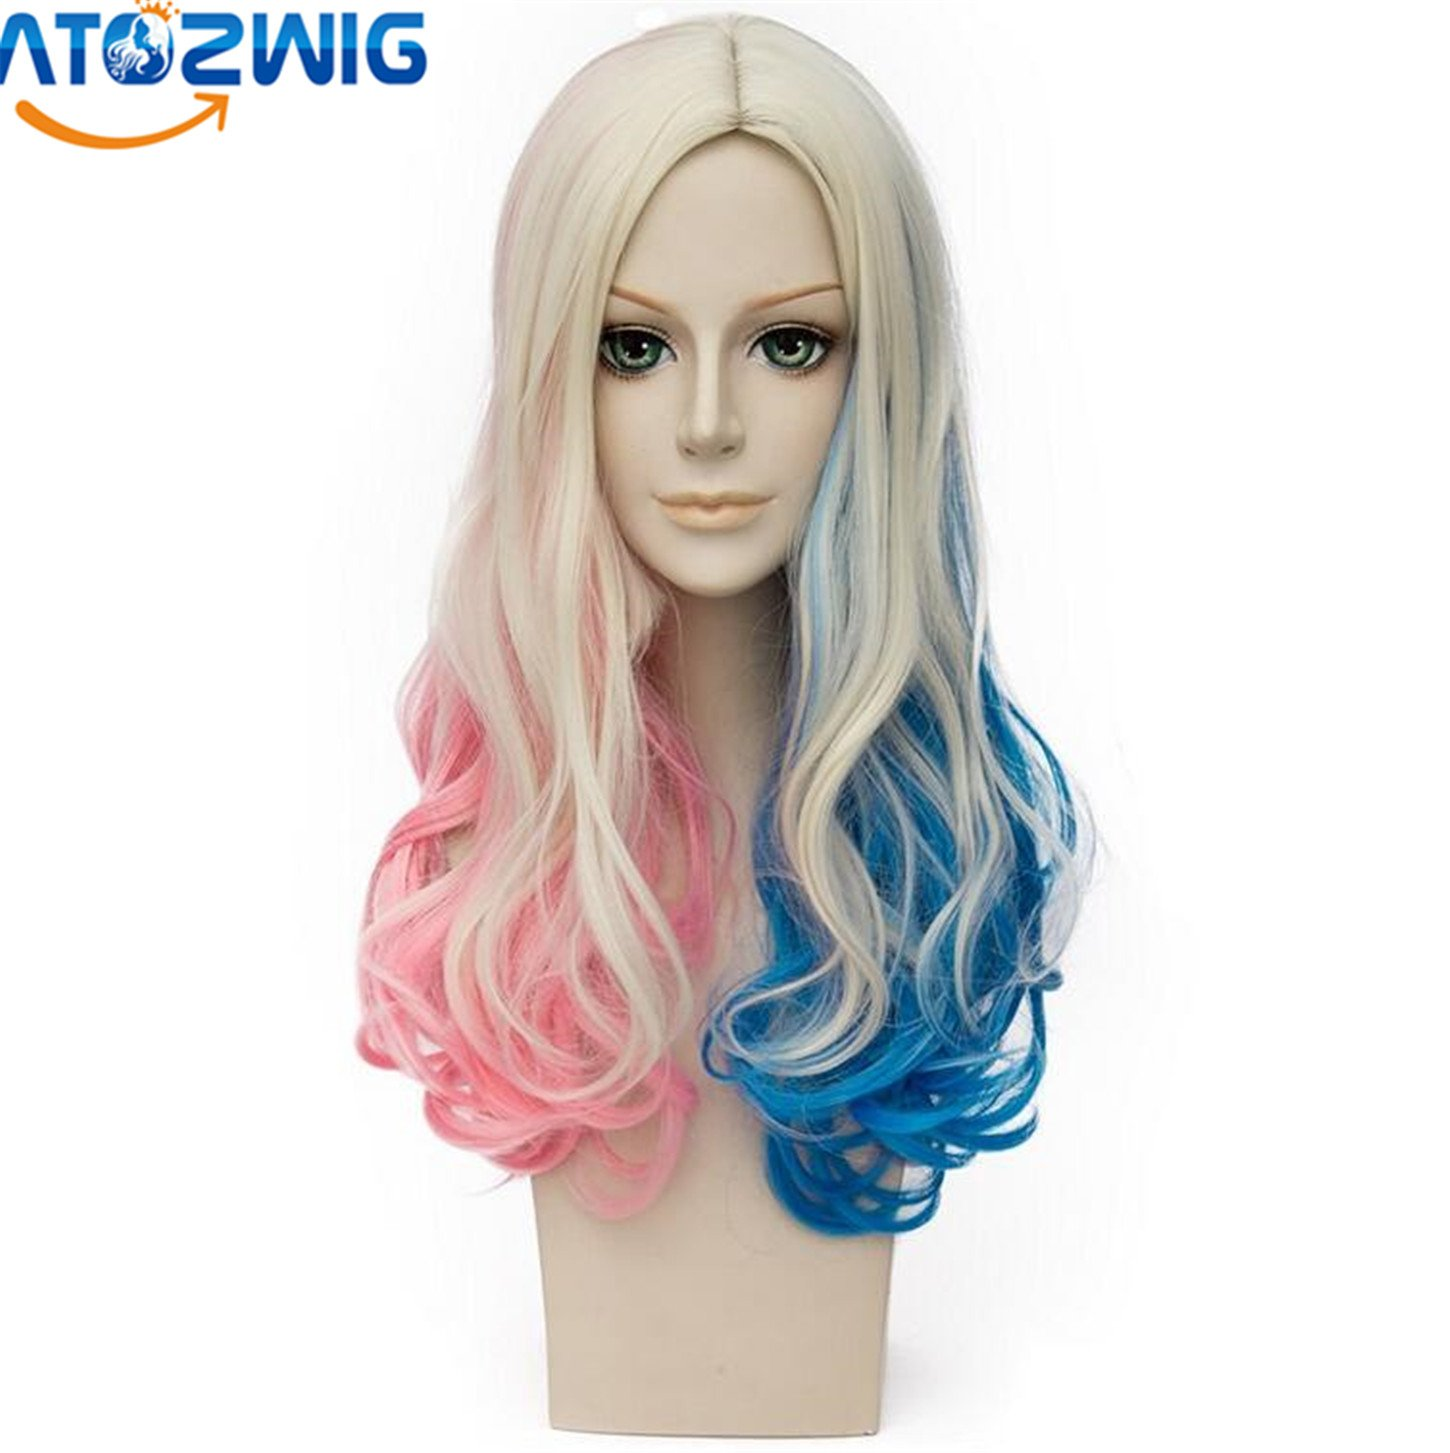 Amazon.com: ATOZWIG Ombre Pink Blue Blonde Long Wavy Cosplay Costume Wig+Wig Cap: Beauty